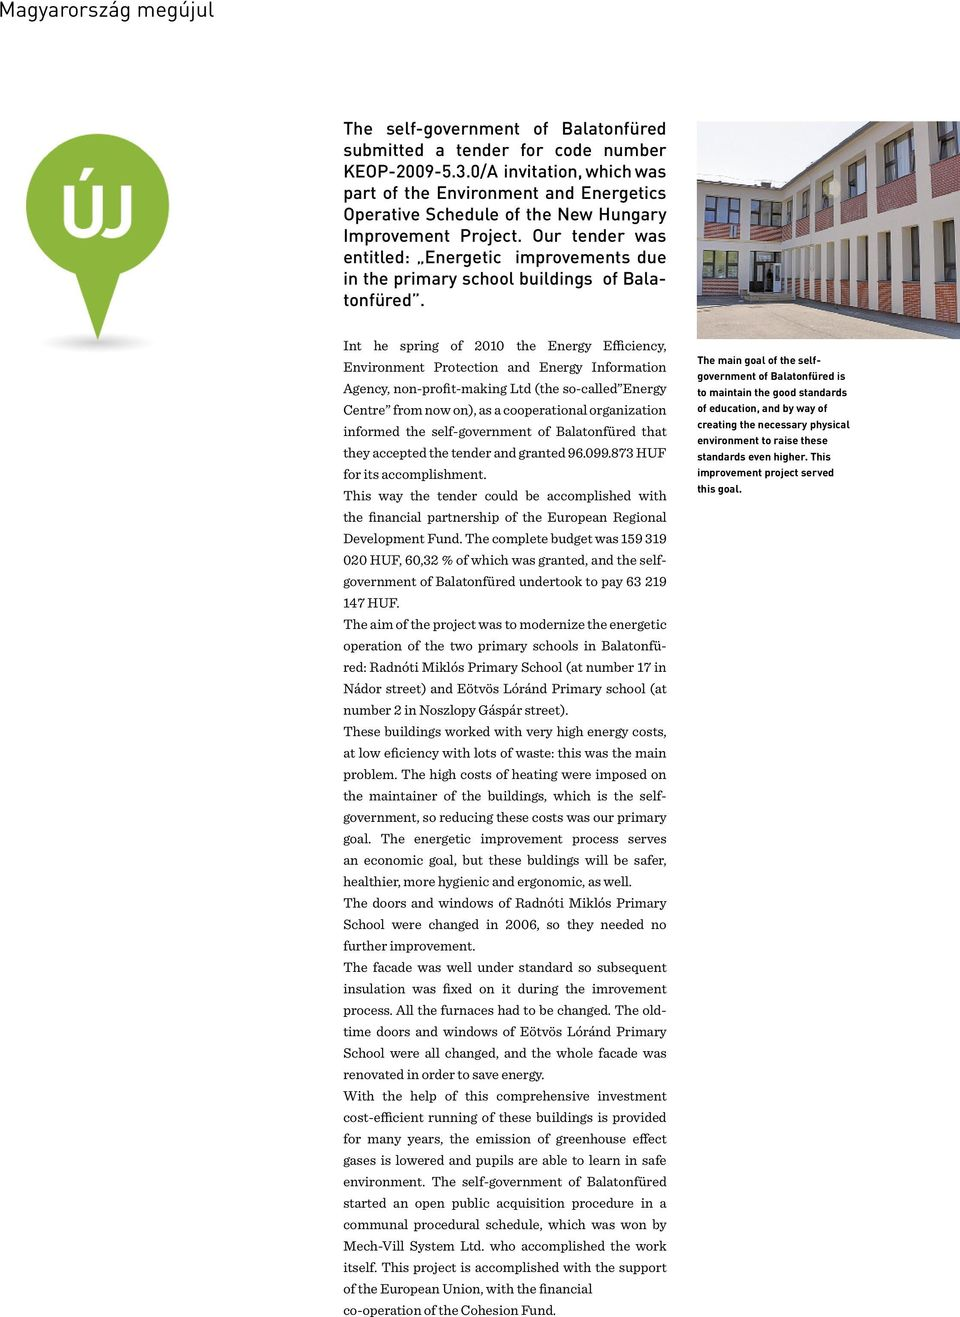 Our tender was entitled: Energetic improvements due in the primary school buildings of Balatonfüred.